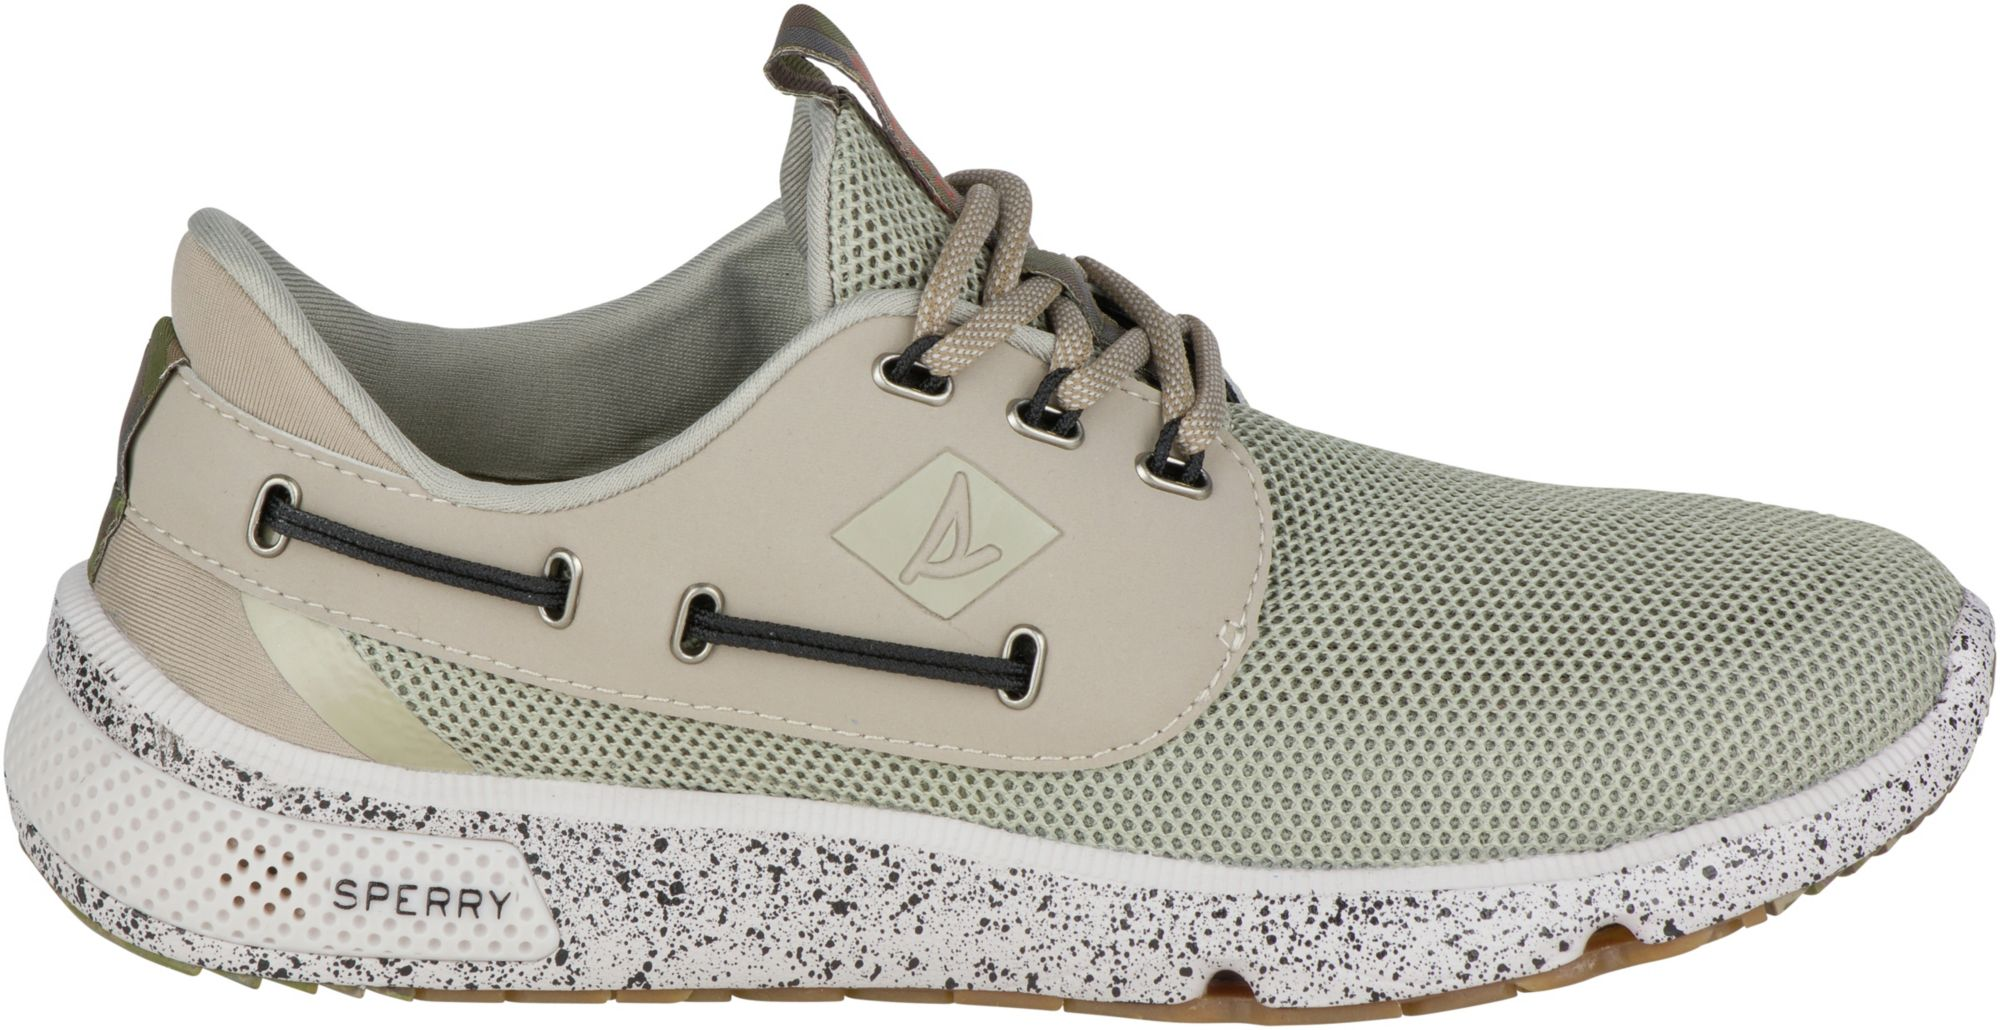 Sperry Top Sider Men S  Seas  Eye Boating Shoe Review